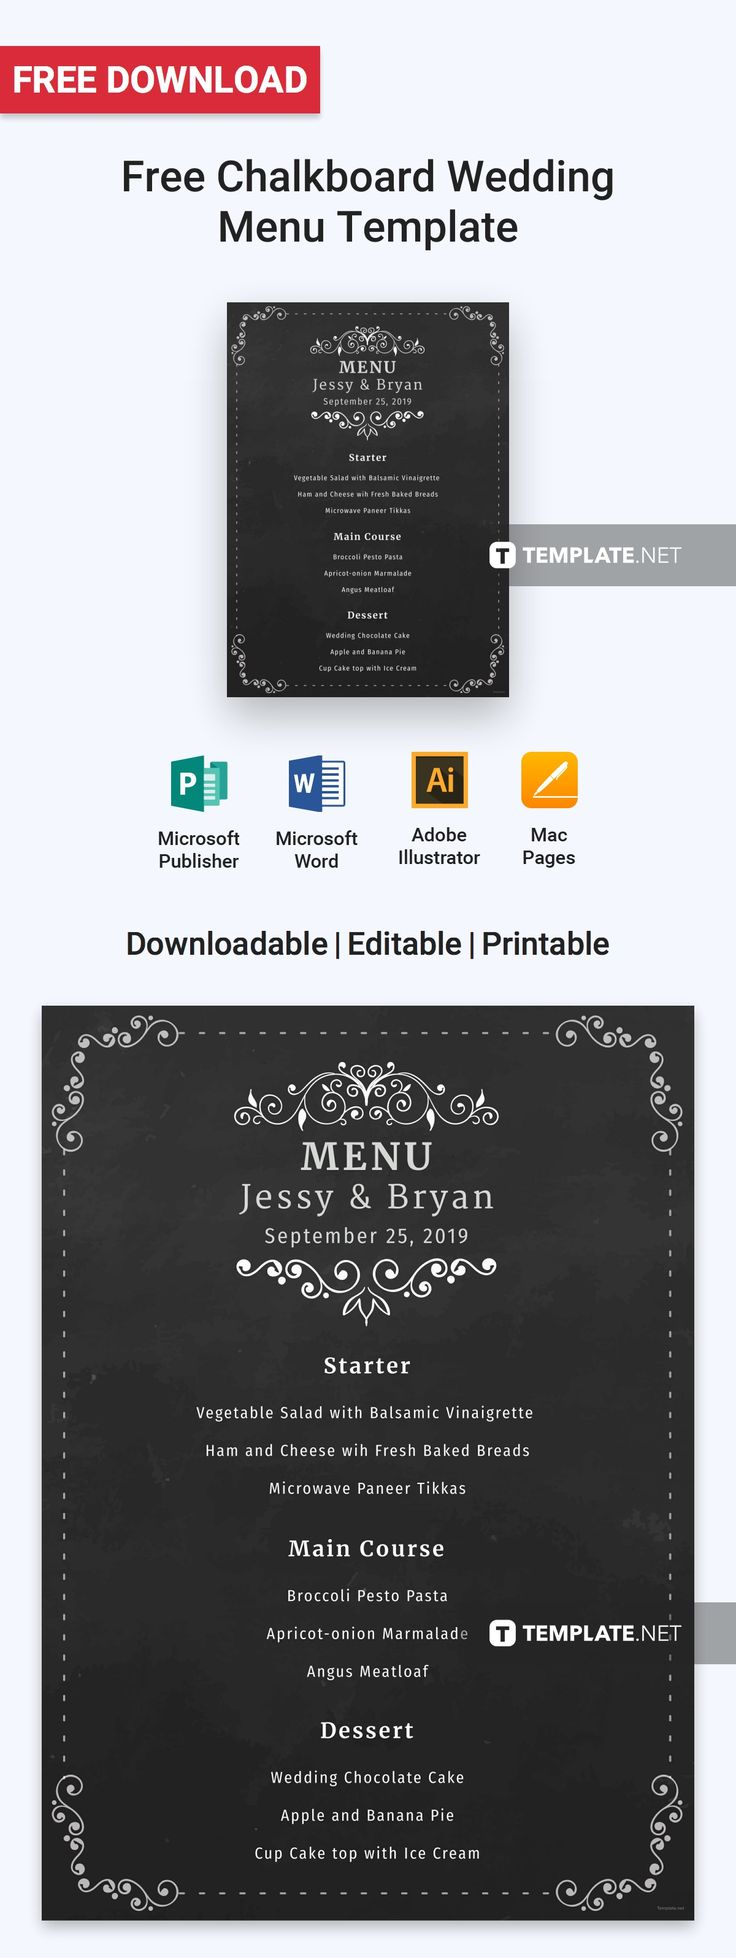 Menu Templates Free Microsoft Adorable 12 Best Free Menu Templates Images On Pinterest